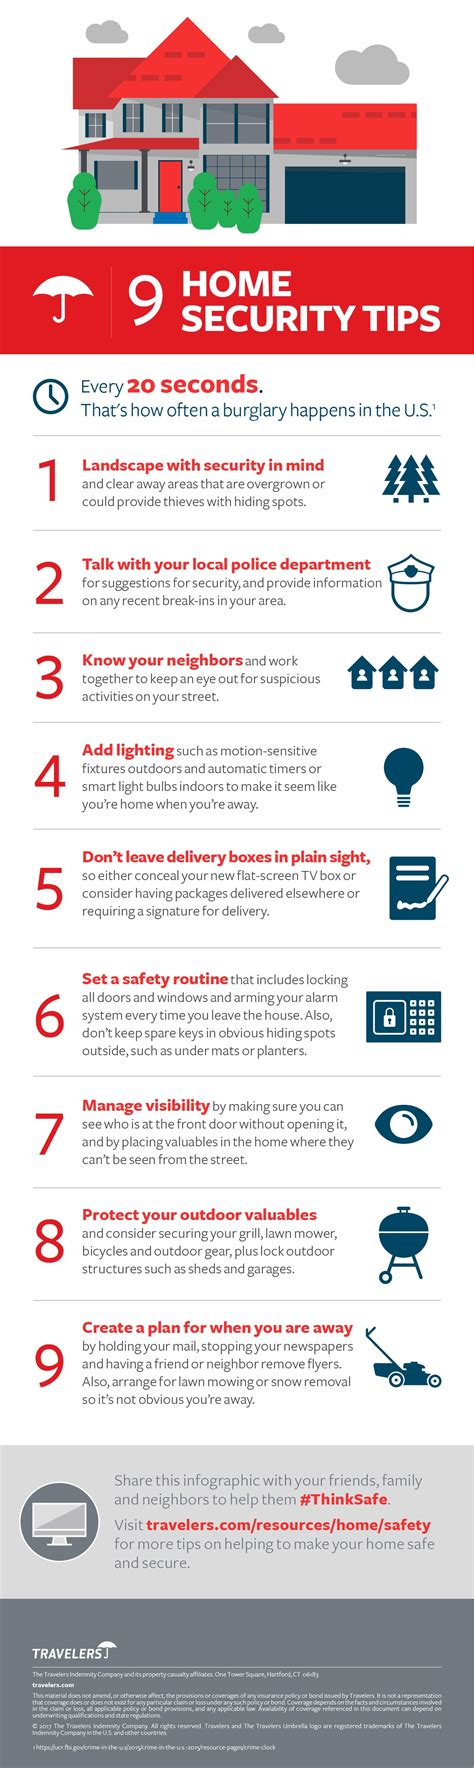 home security tips infographic ayala insurance